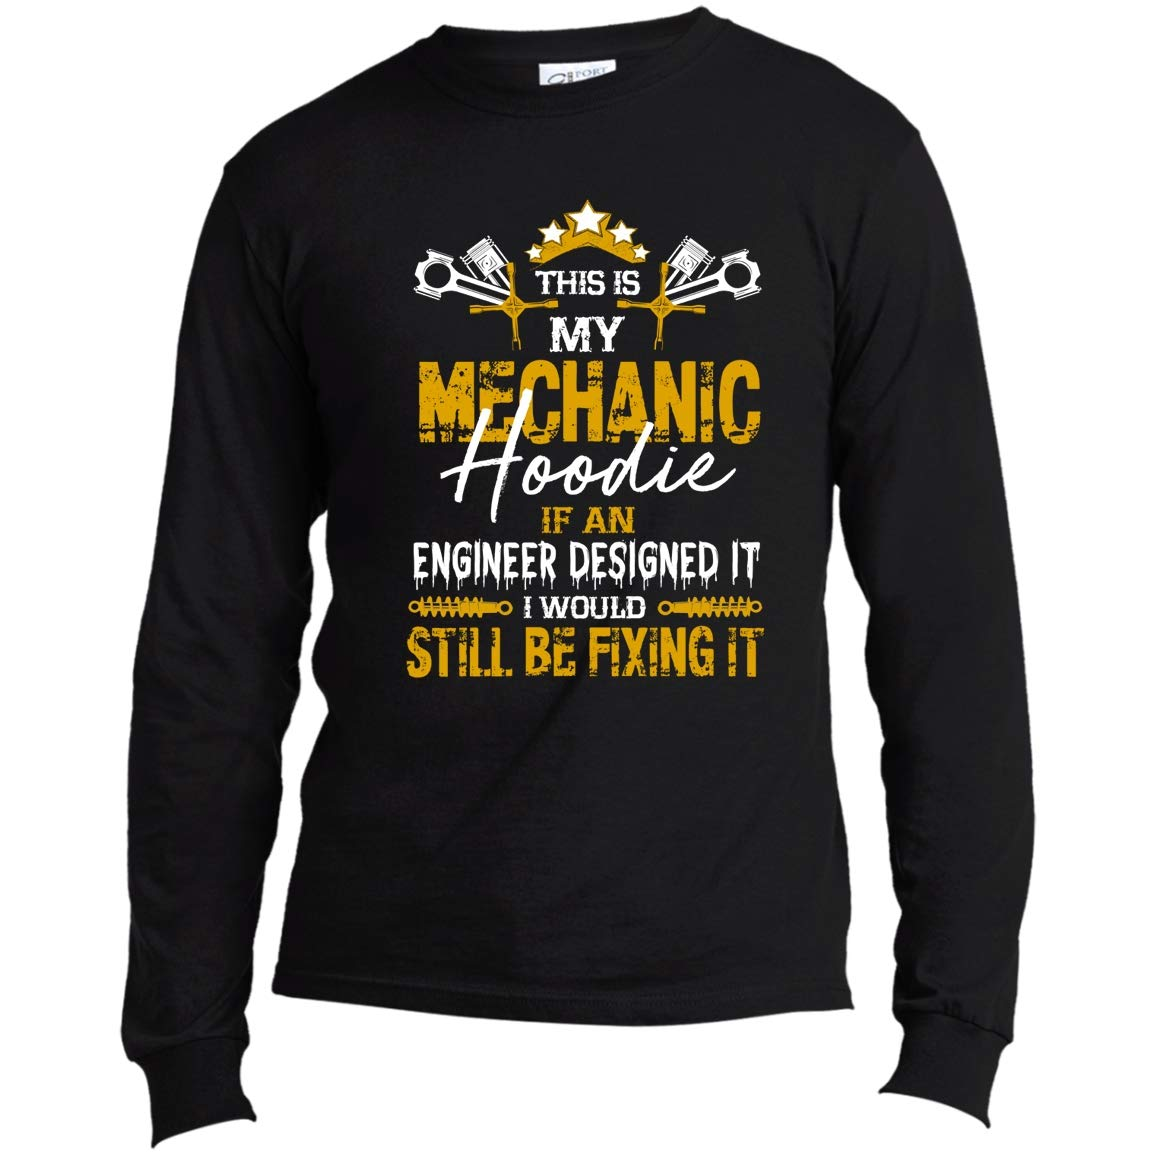 I Would Still Be Fixing It Tees Us This Is My Mechanic T Shirt